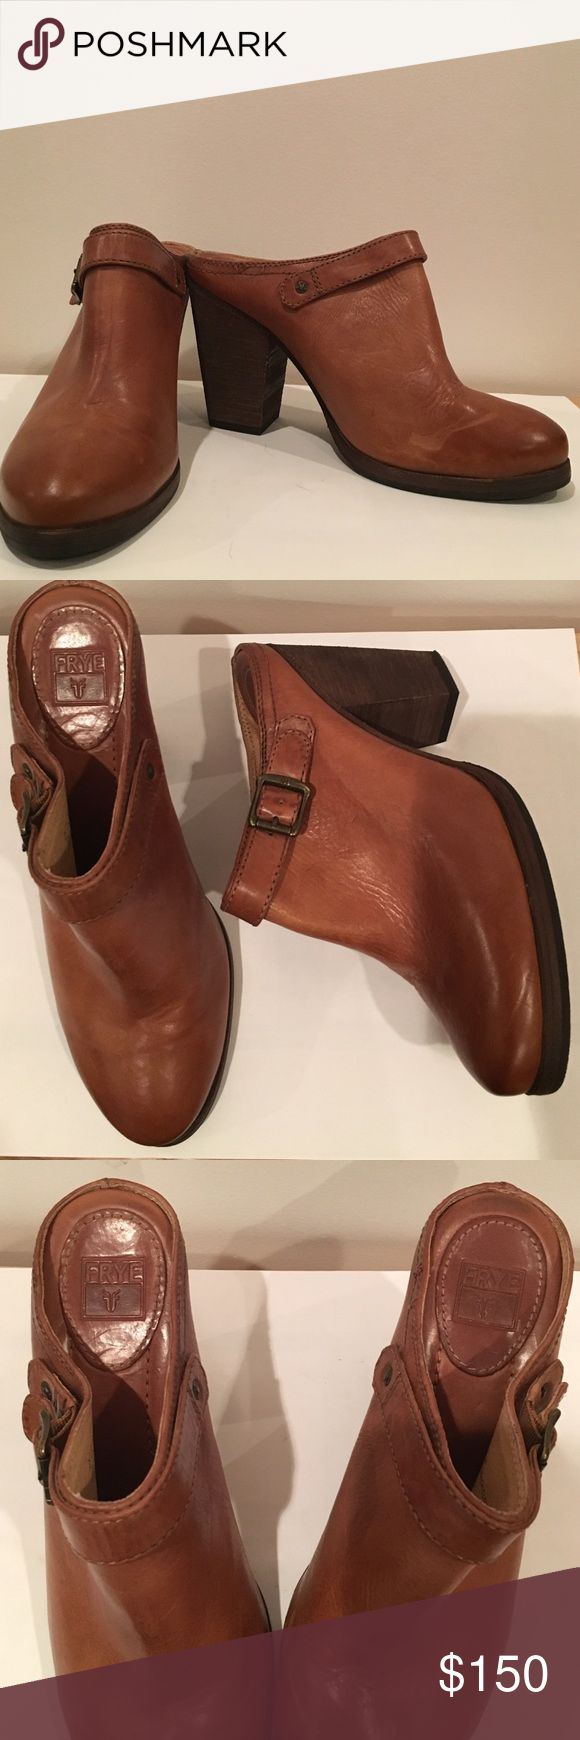 Frye Leather Heeled Mules/Clogs Frye Leather Heeled Mules: NEVER WORN!       These mules/clogs have a distressed leather and and rubber sole with brass hardware Frye Shoes Mules & Clogs